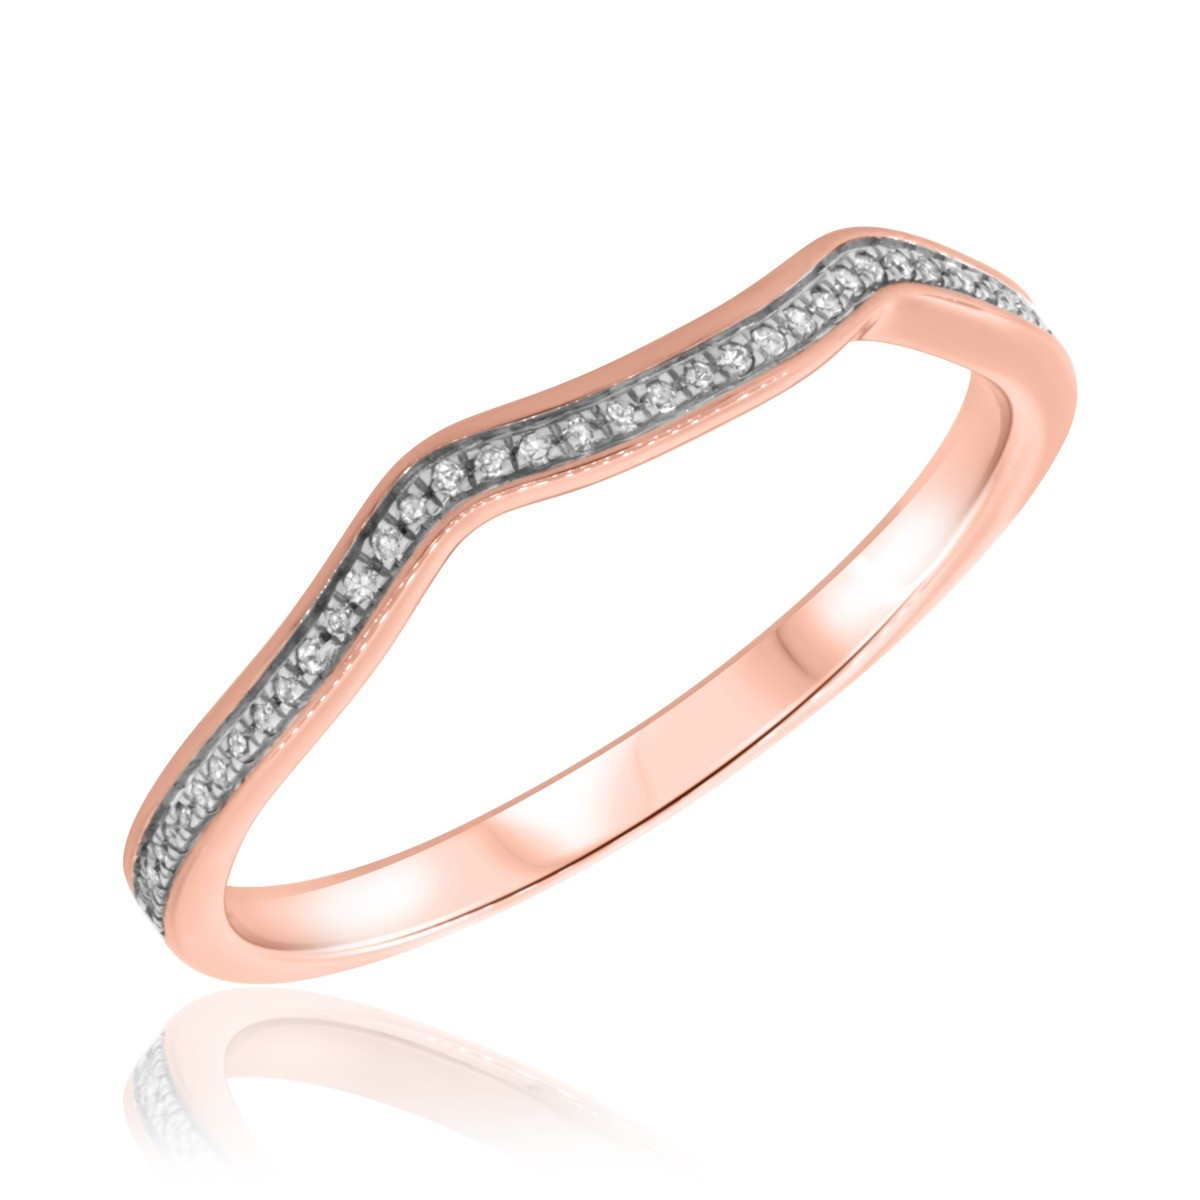 1/10 CT. T.W. Diamond Ladies Wedding Band  10K Rose Gold